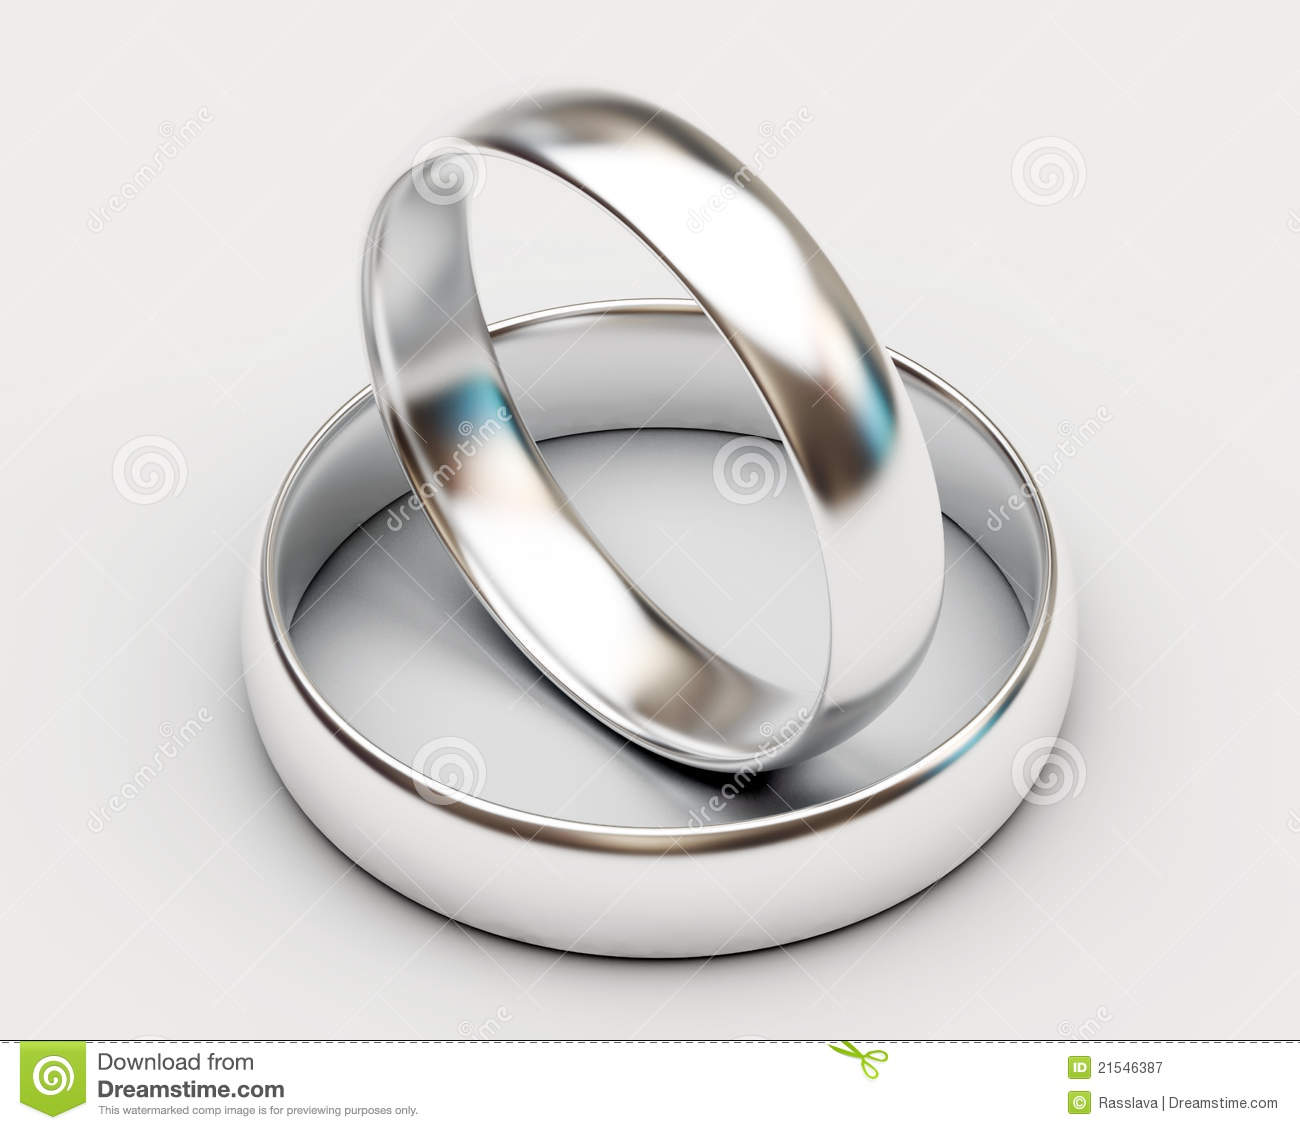 platinum wedding rings on white background - Platinum Wedding Rings